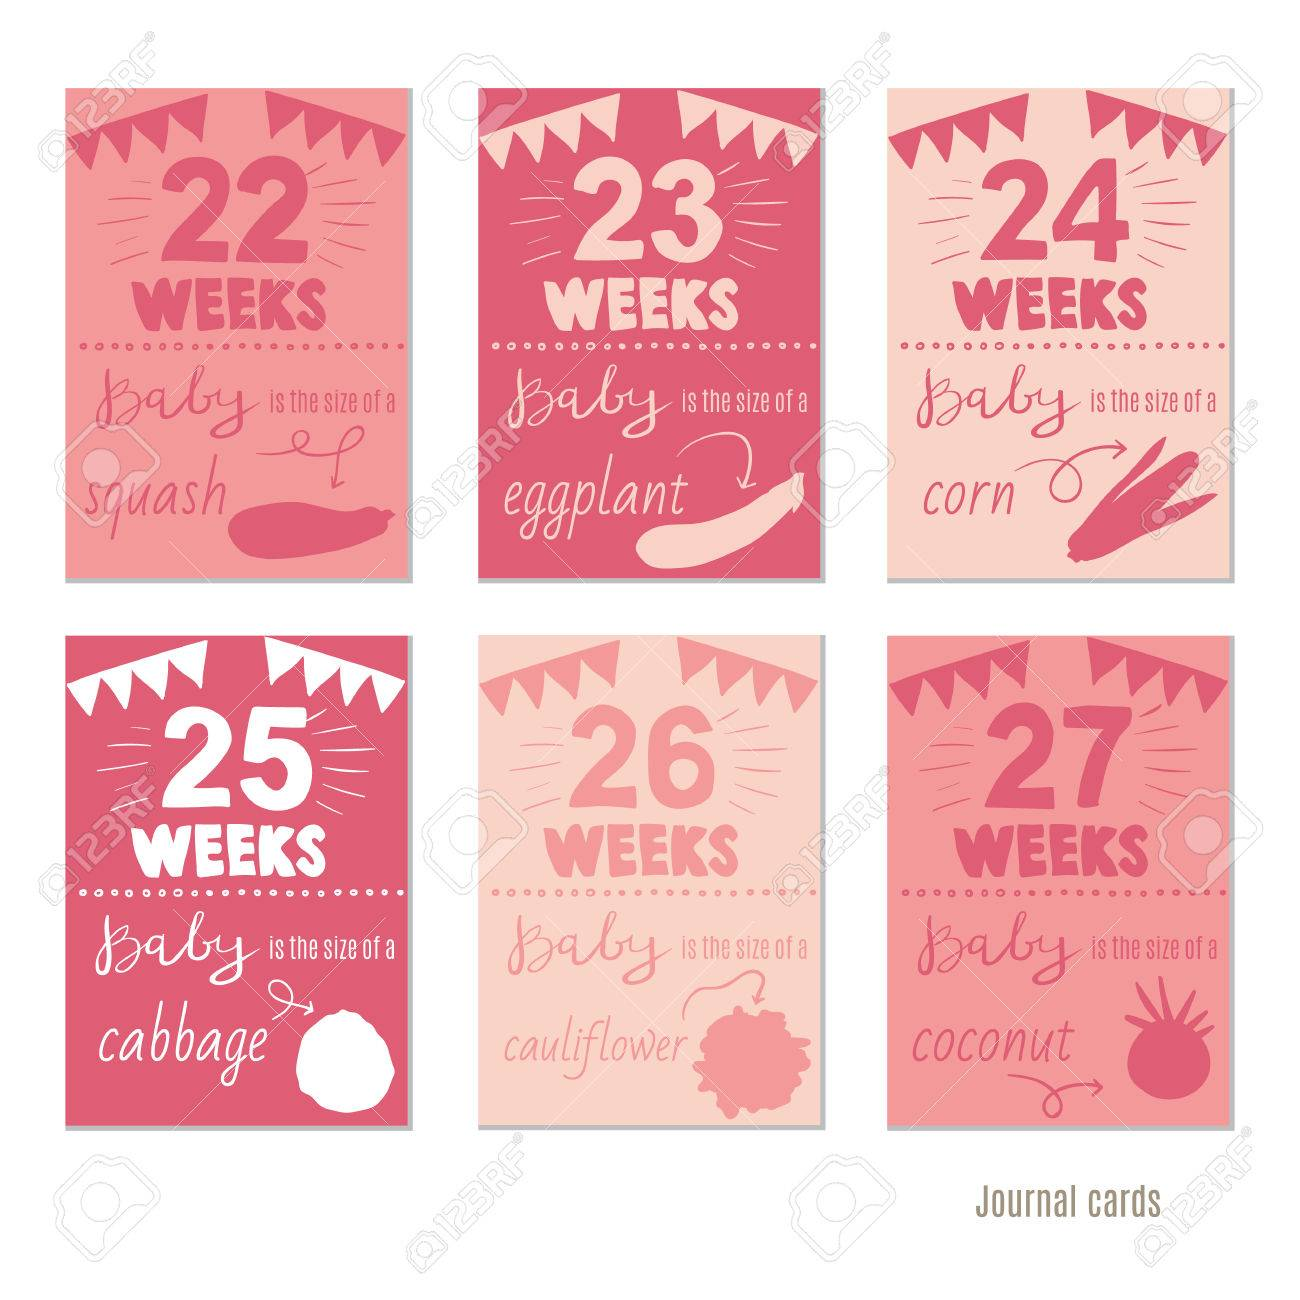 Pregnancy 12 Weeks Vector Design Templates For Journal Cards Scrapbooking Greeting